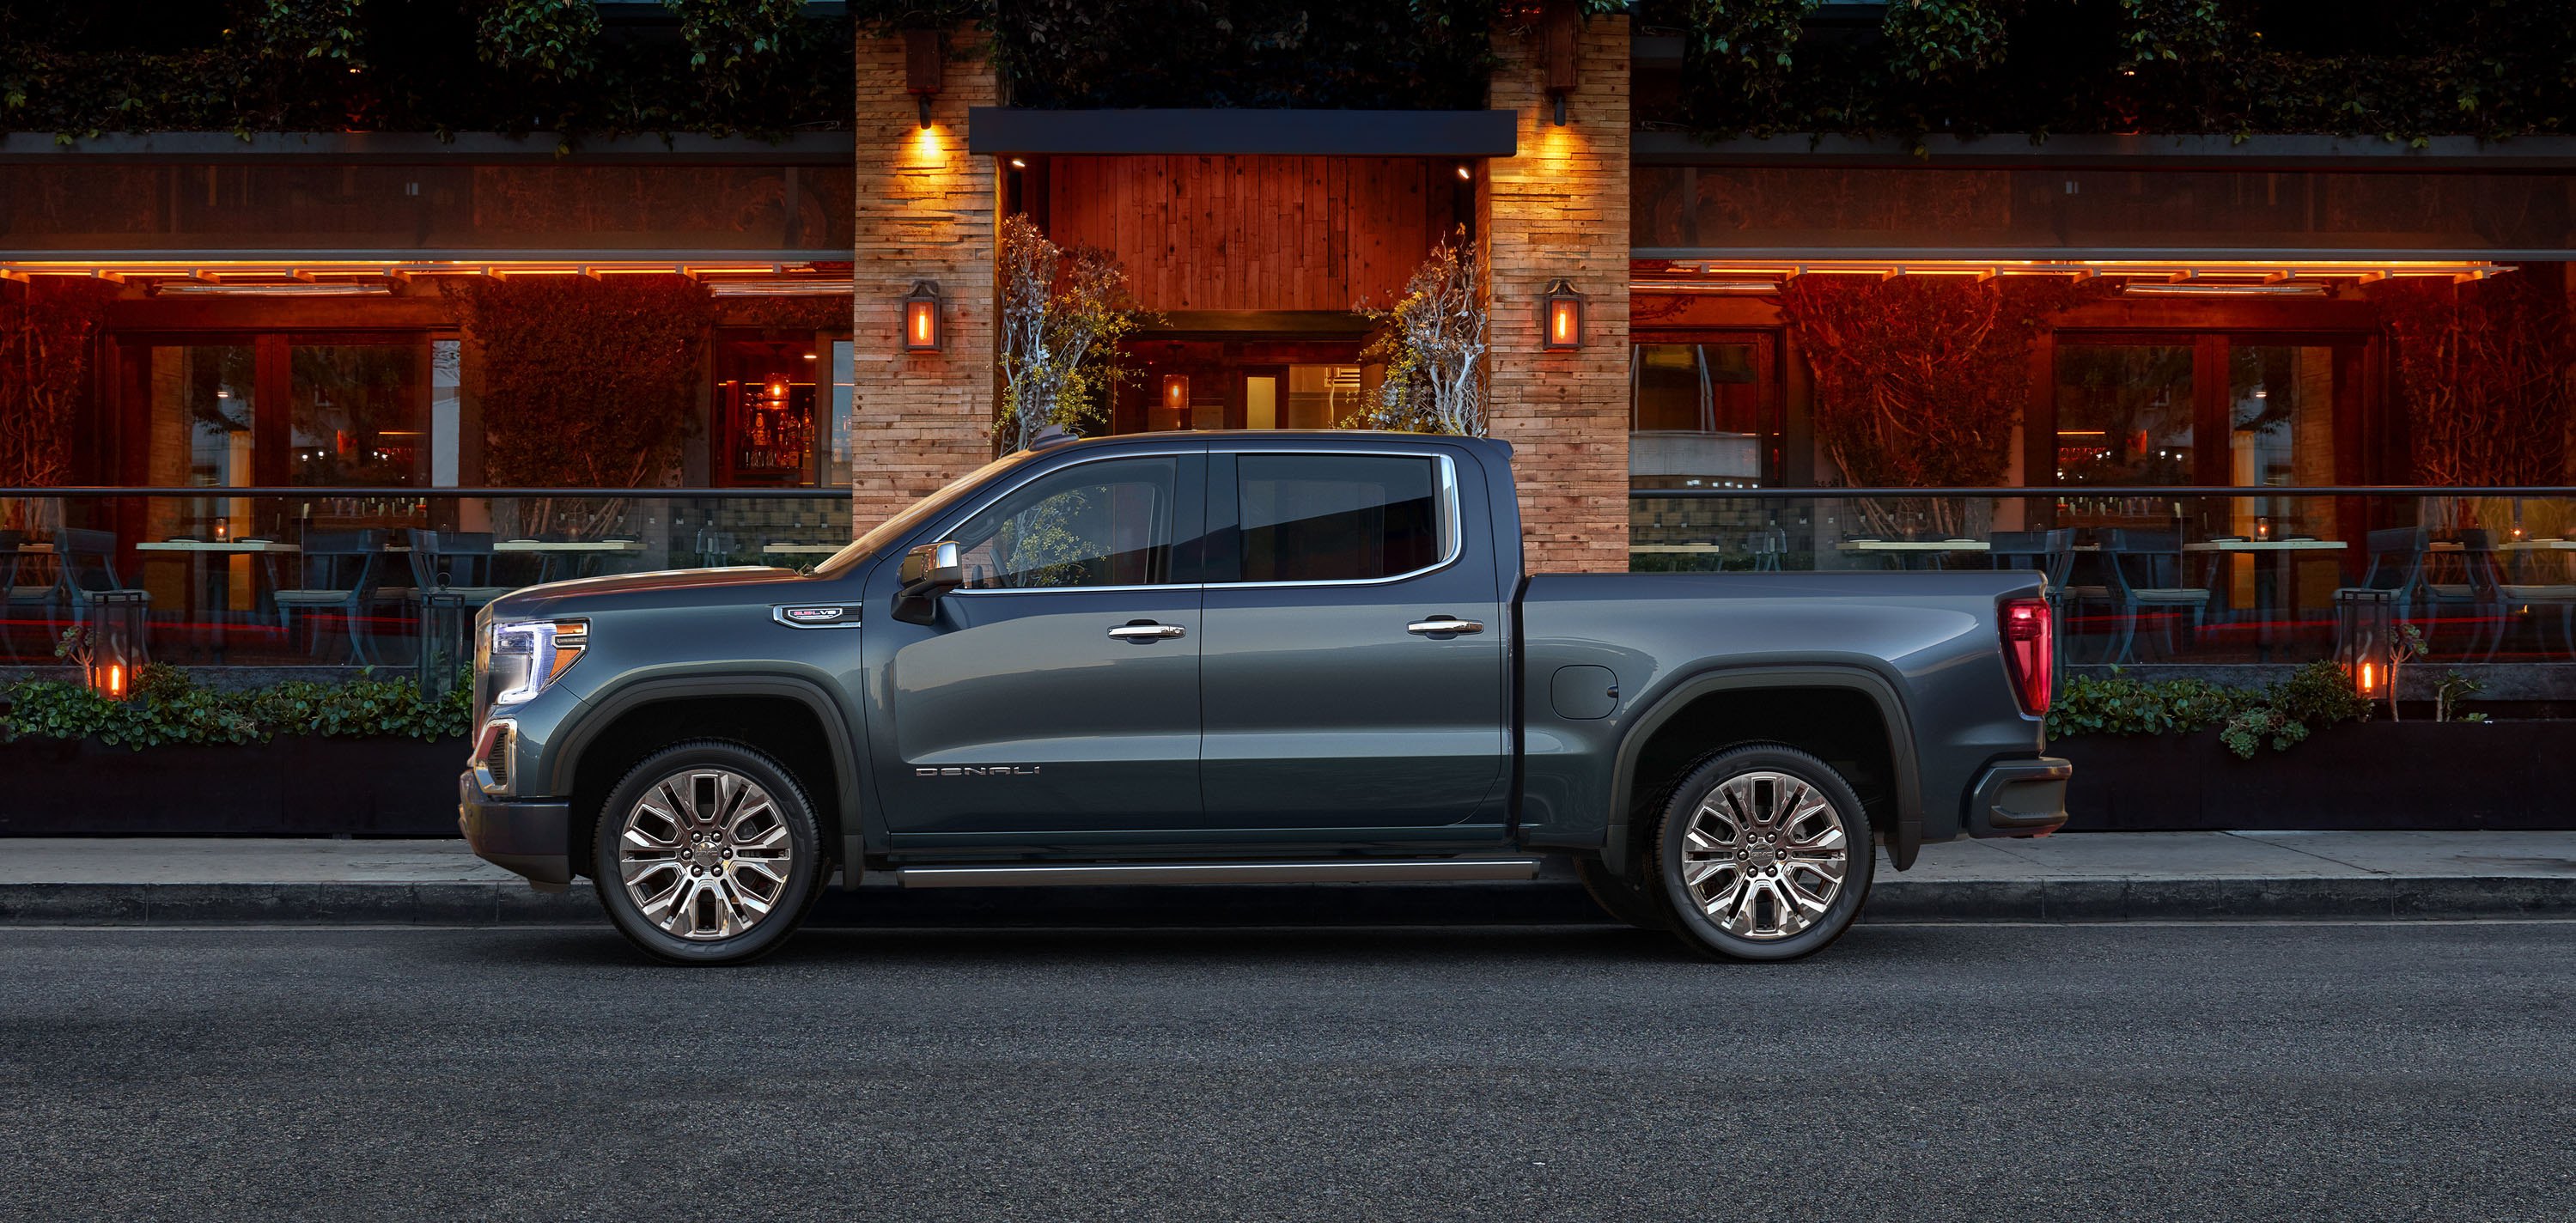 2019 GMC Sierra 1500 Review, Ratings, Specs, Prices, and